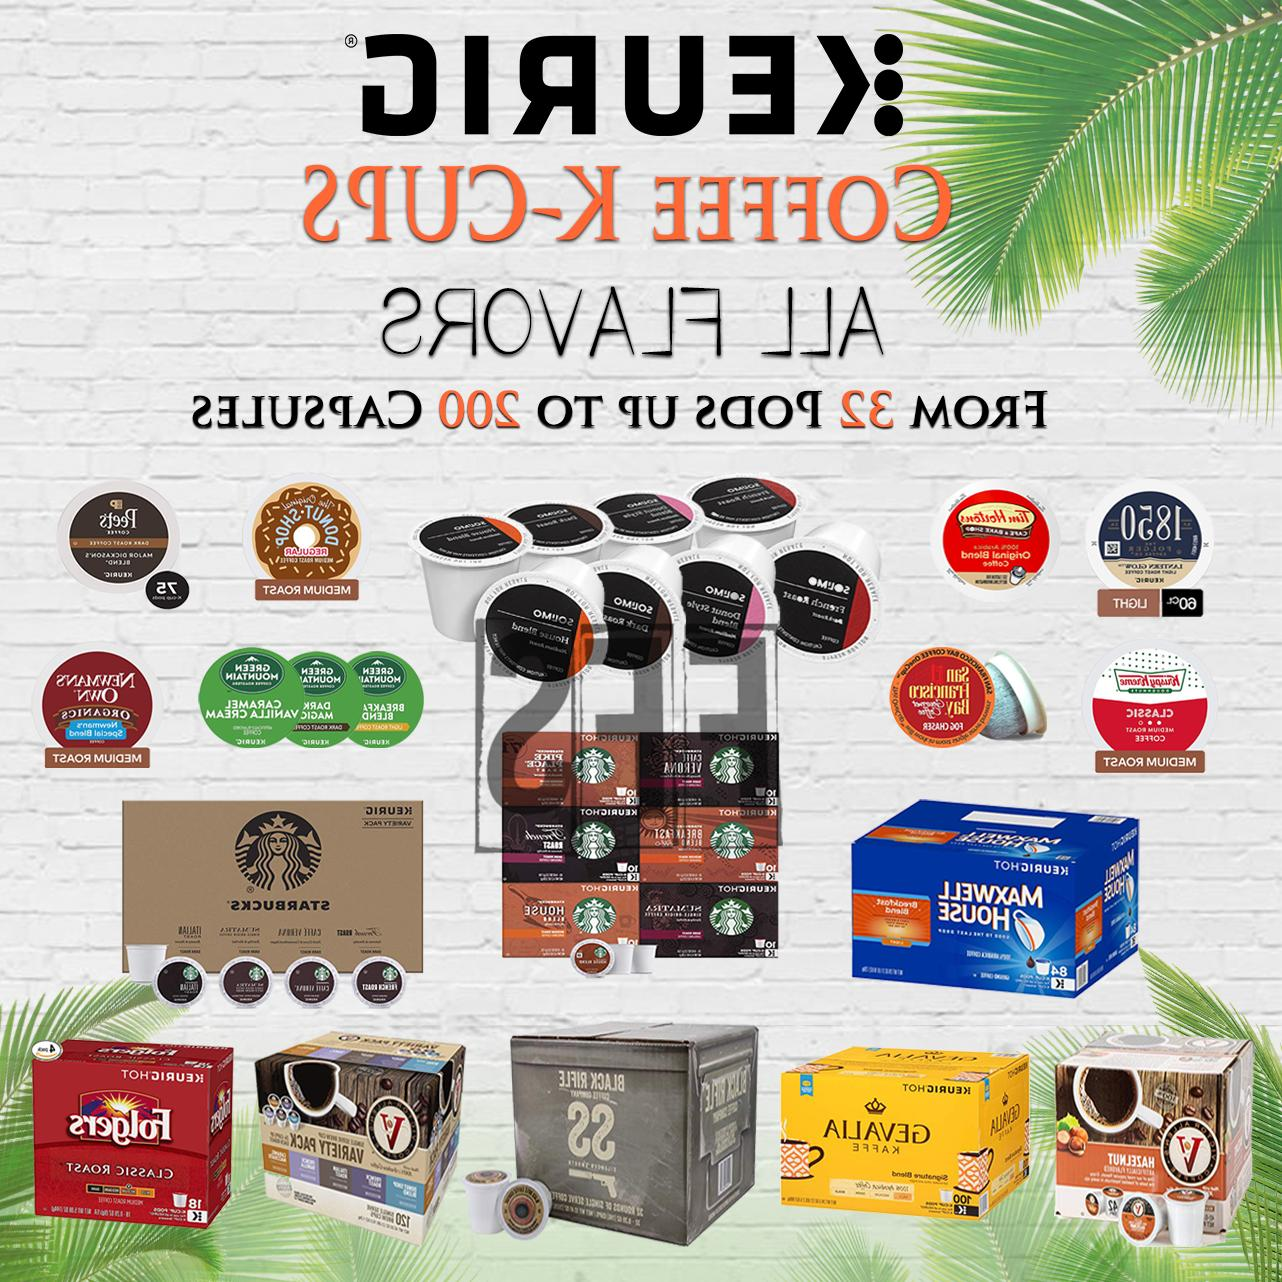 keurig coffee kcups k cups lot 32